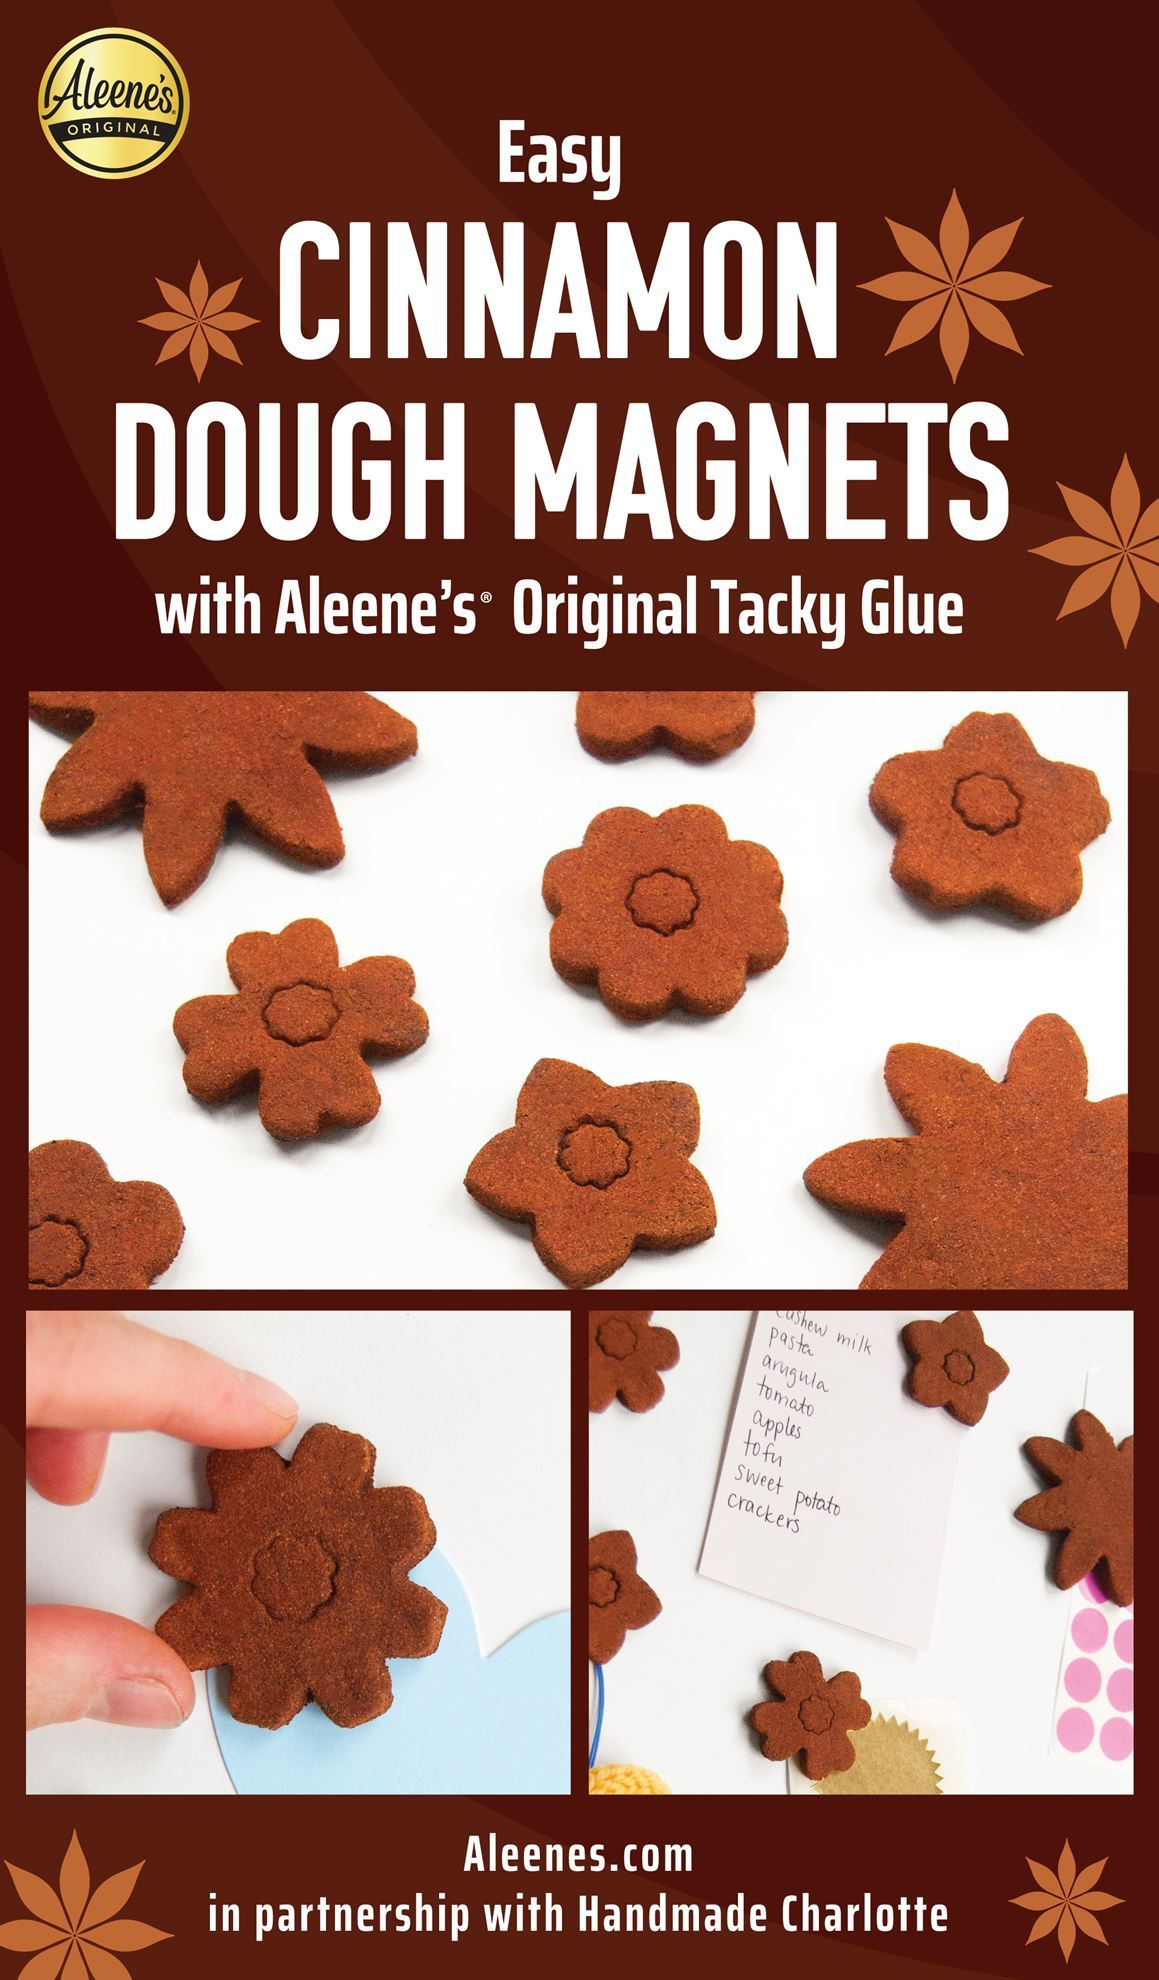 Picture of Easy Cinnamon Dough Magnets with Tacky Glue